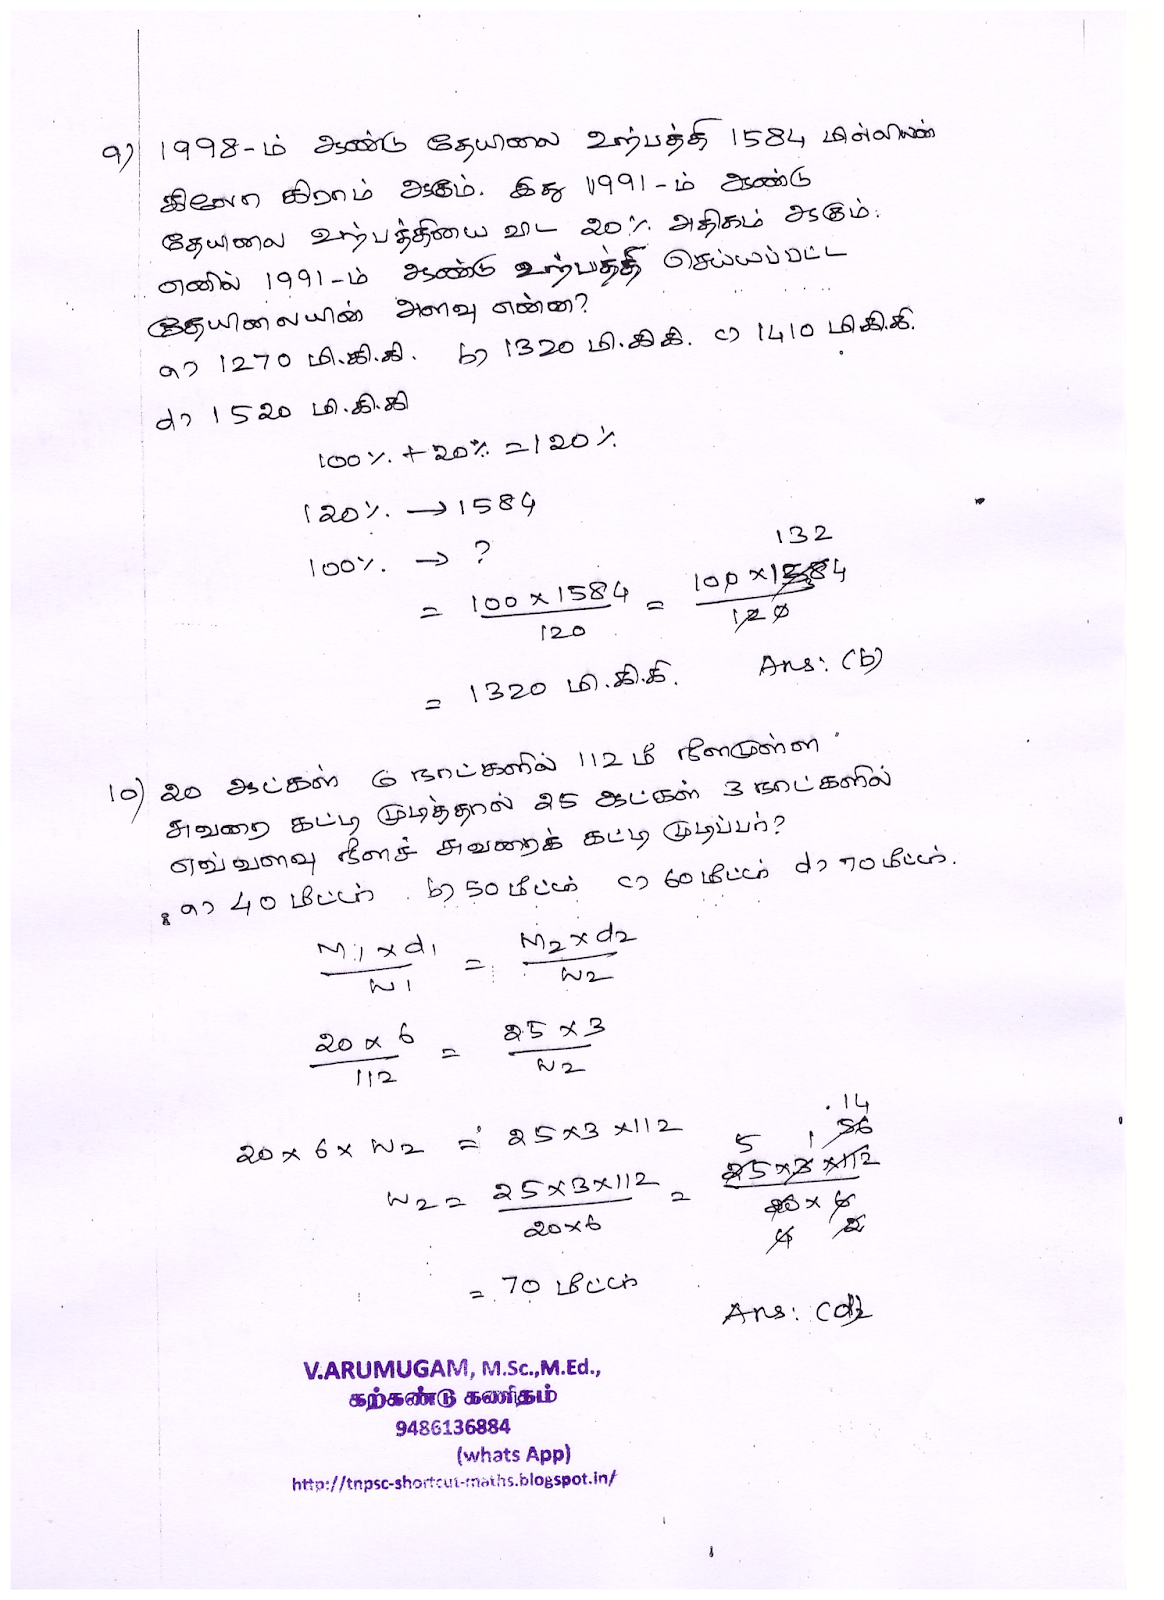 TNPSC – 2019 - Assitant Agricultural Officer in the Tamil Nadu Agricultural Extention Subordinate Service, 2016-19 EXAM - EXAM DATE: 07.04.2019